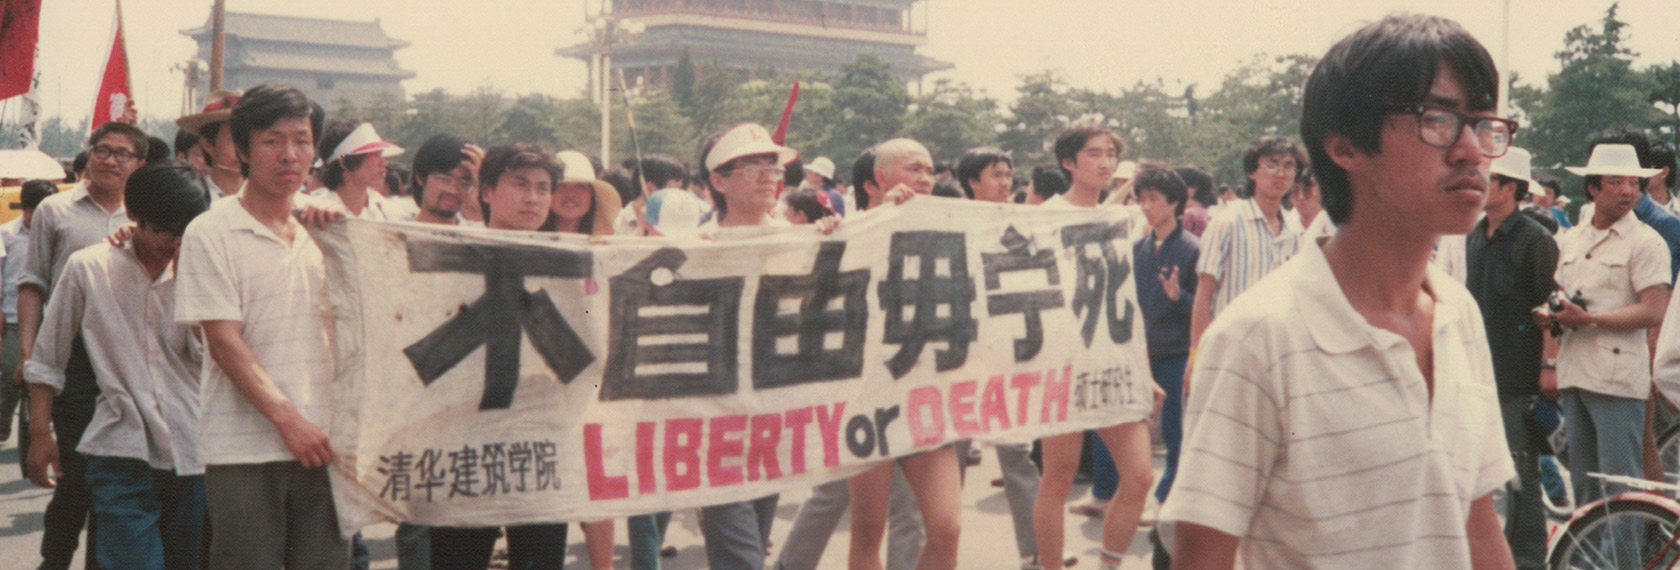 TIANANMEN: THE PEOPLE VERSUS THE PARTY - lg slider